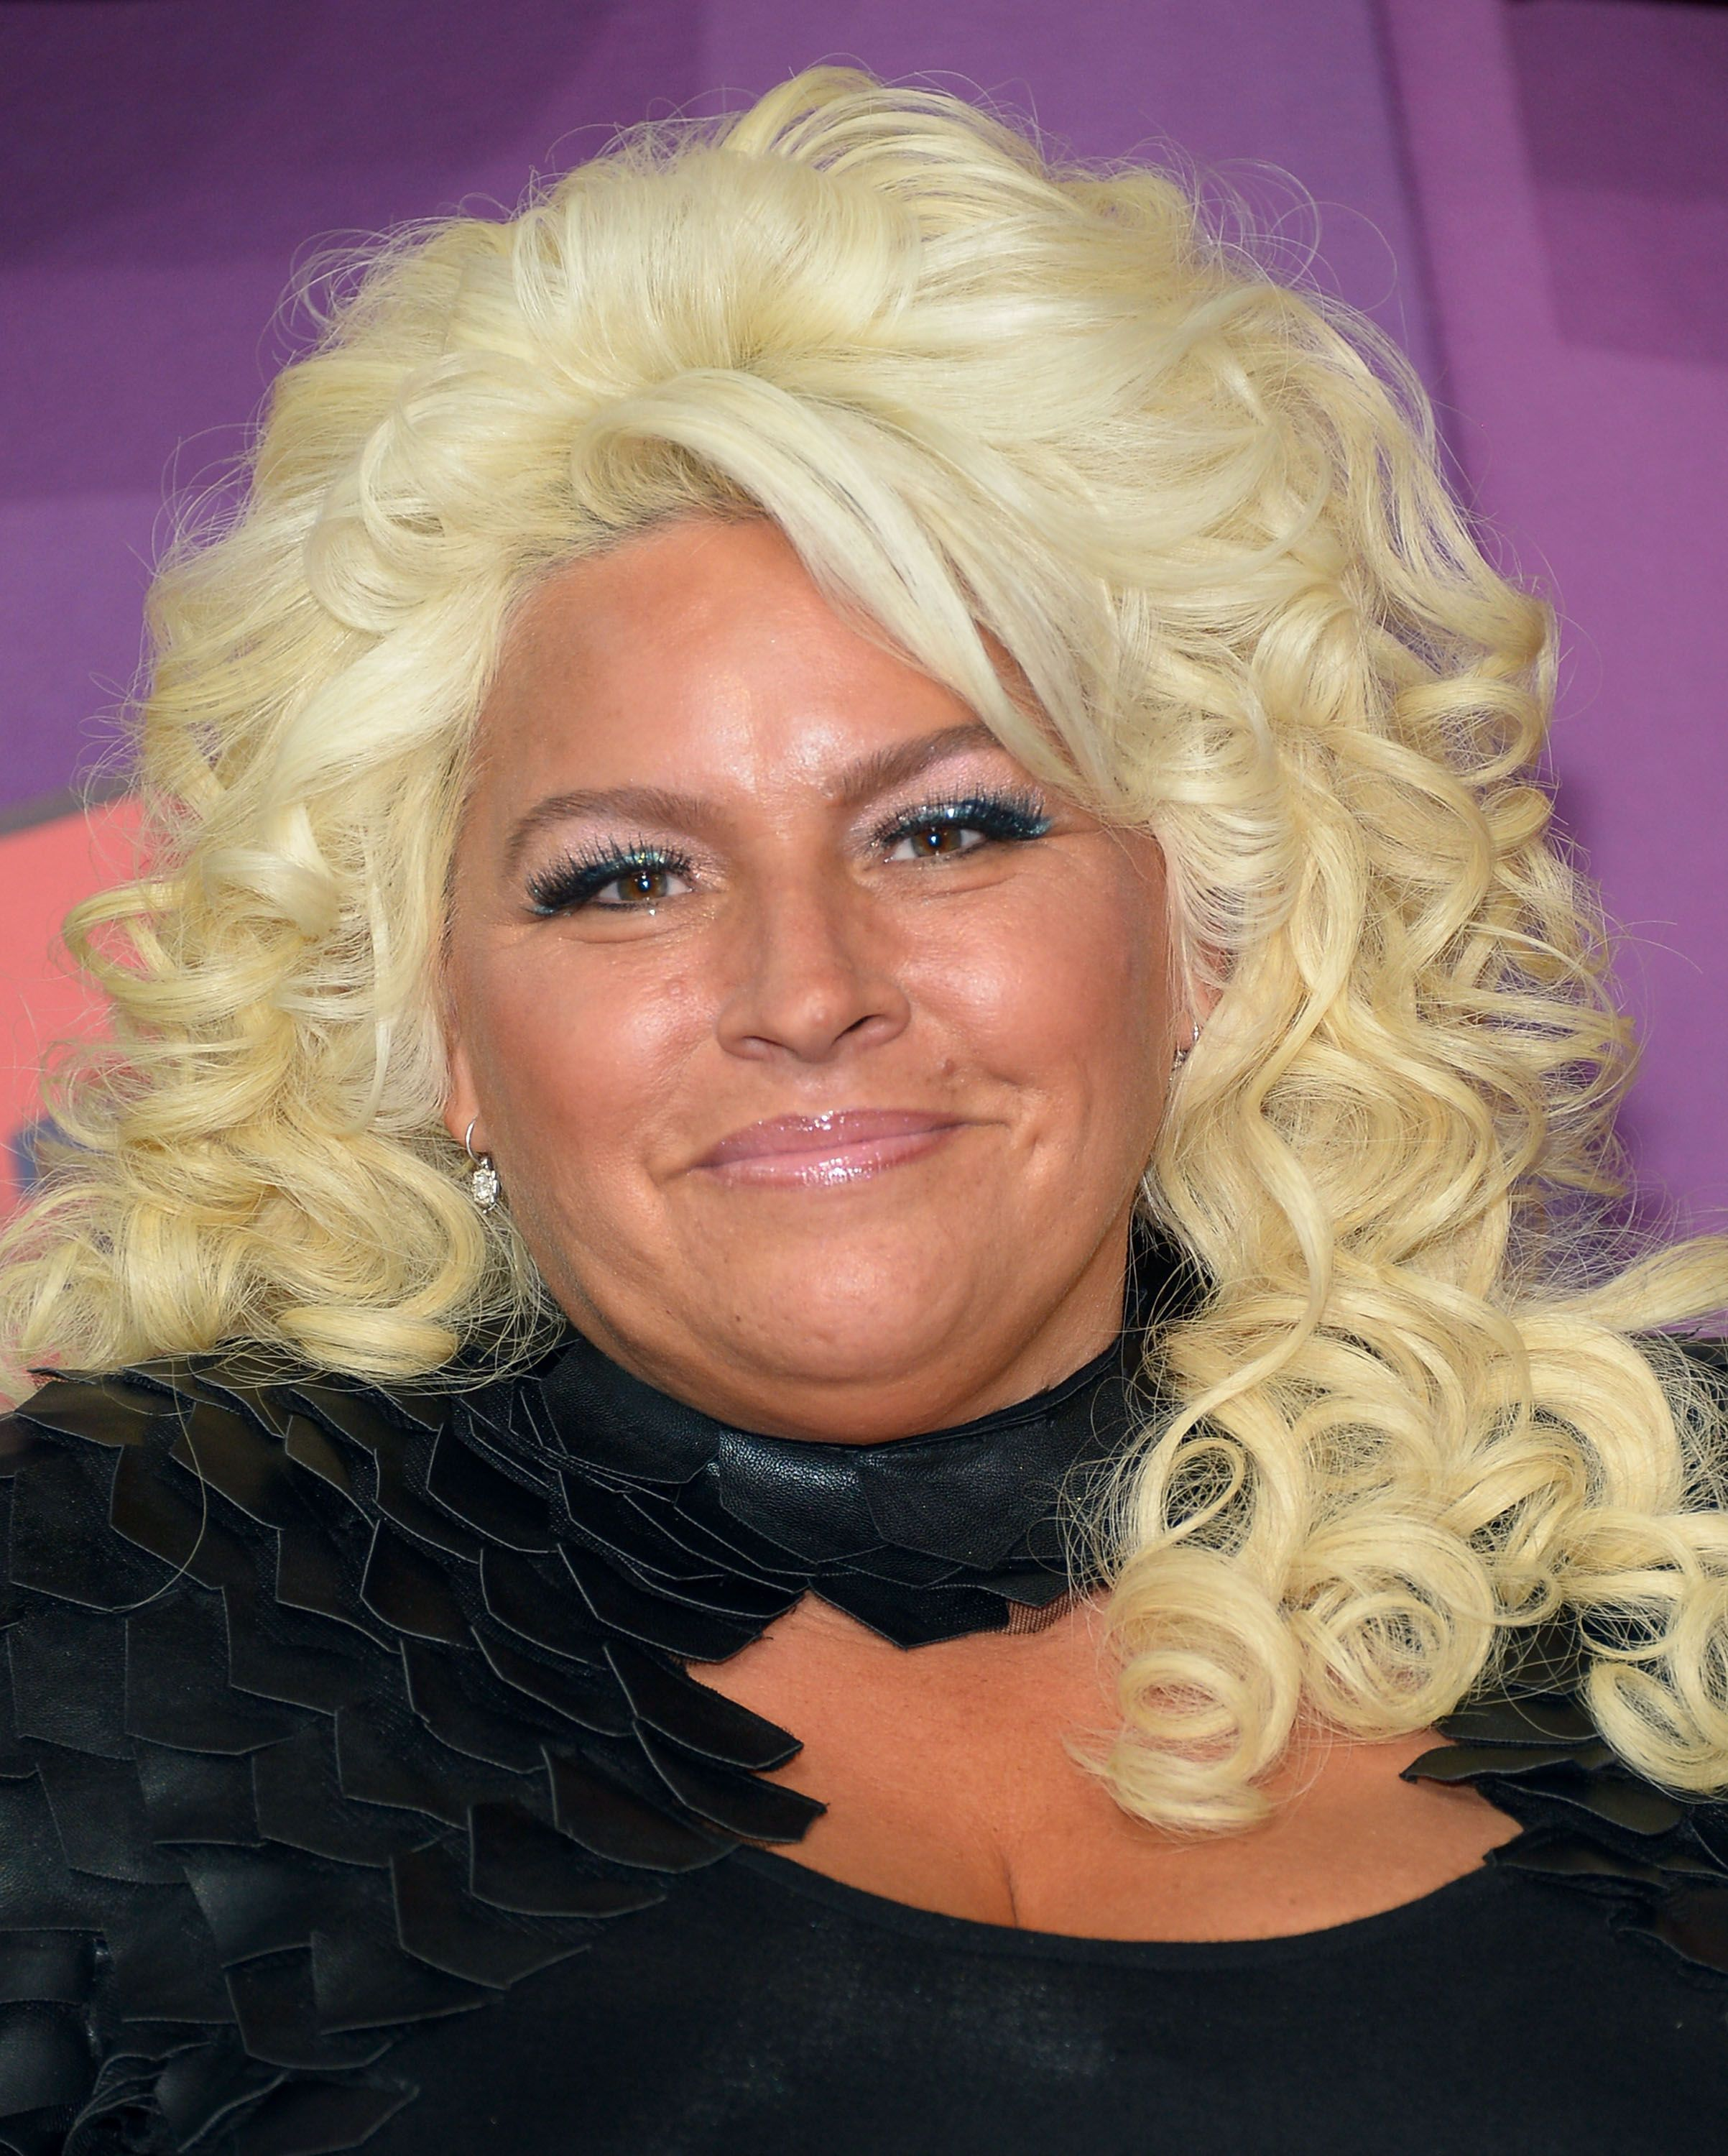 Beth Chapman at the 2014 CMT Music awards at the Bridgestone Arena on June 4, 2014  | Photo: Getty Images